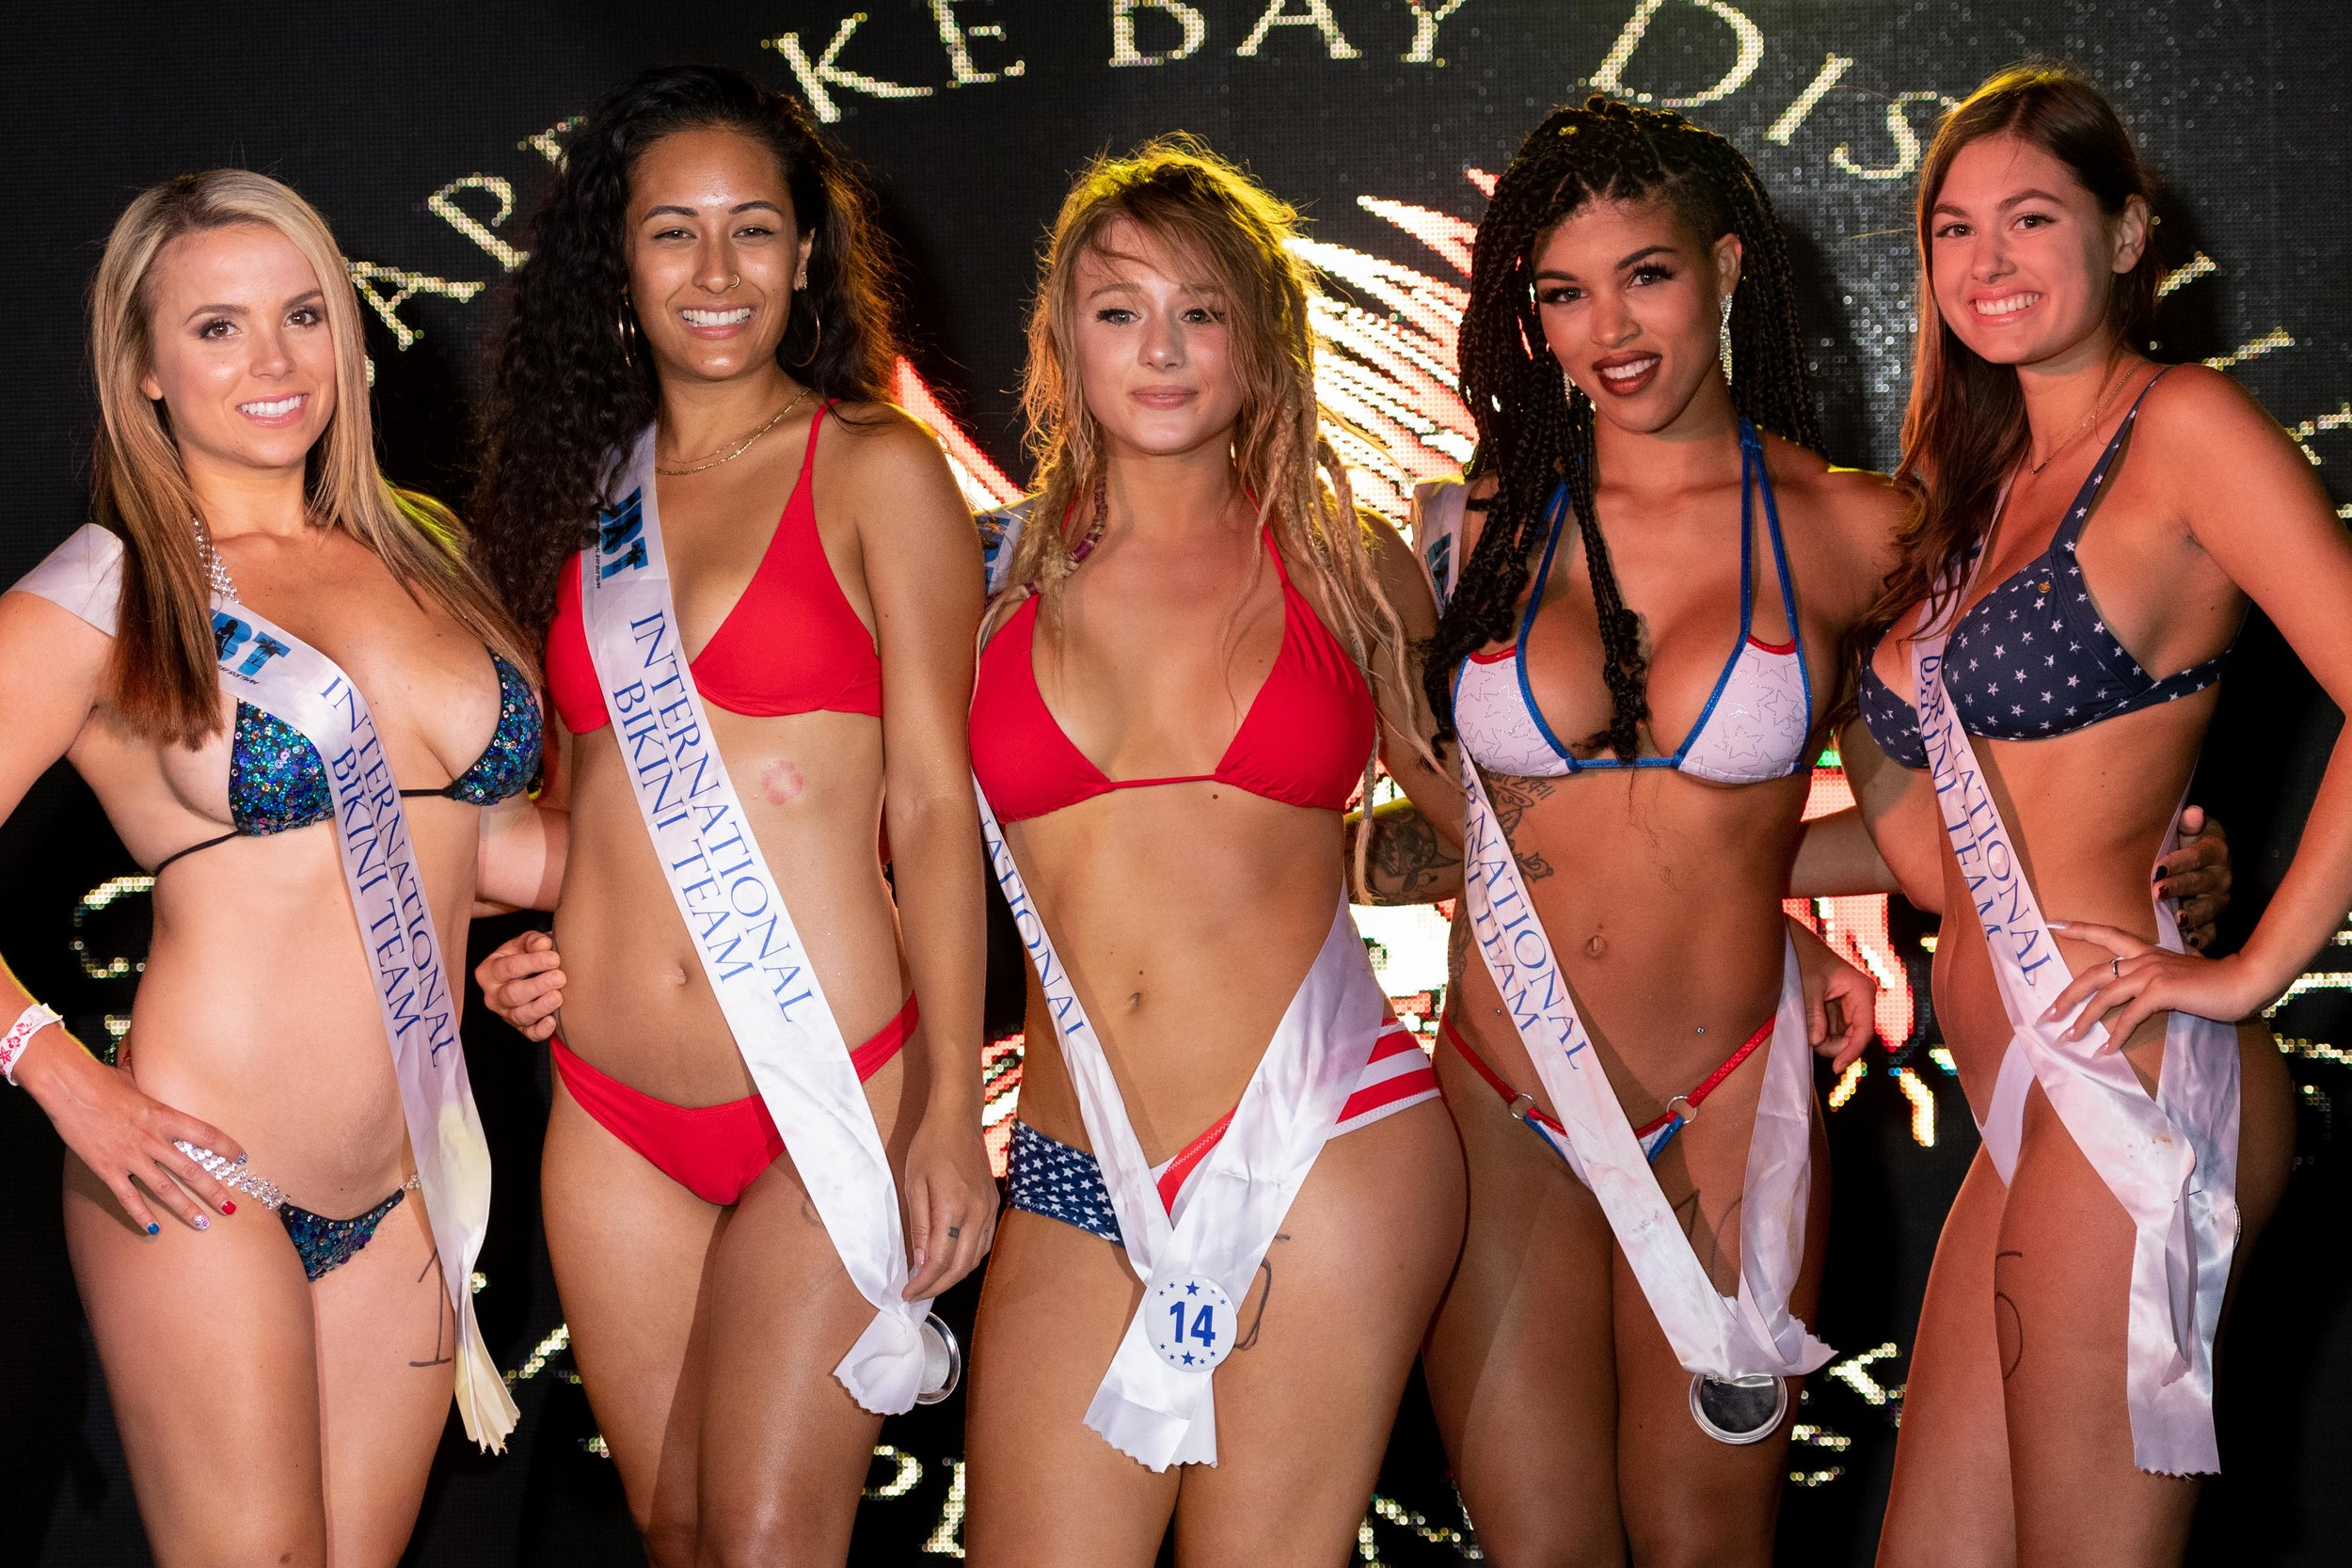 Winners from preliminary Round 6 of the 2018 @coastaledge Miss ECSC Pageant held at @peabodysnightclub Presented by @pacificobeer DoctorStonersVodka ALT 105.3 Chesapeake Bay Distillery iHeartRadio Virginia Beach Nightlife International Bikini Team